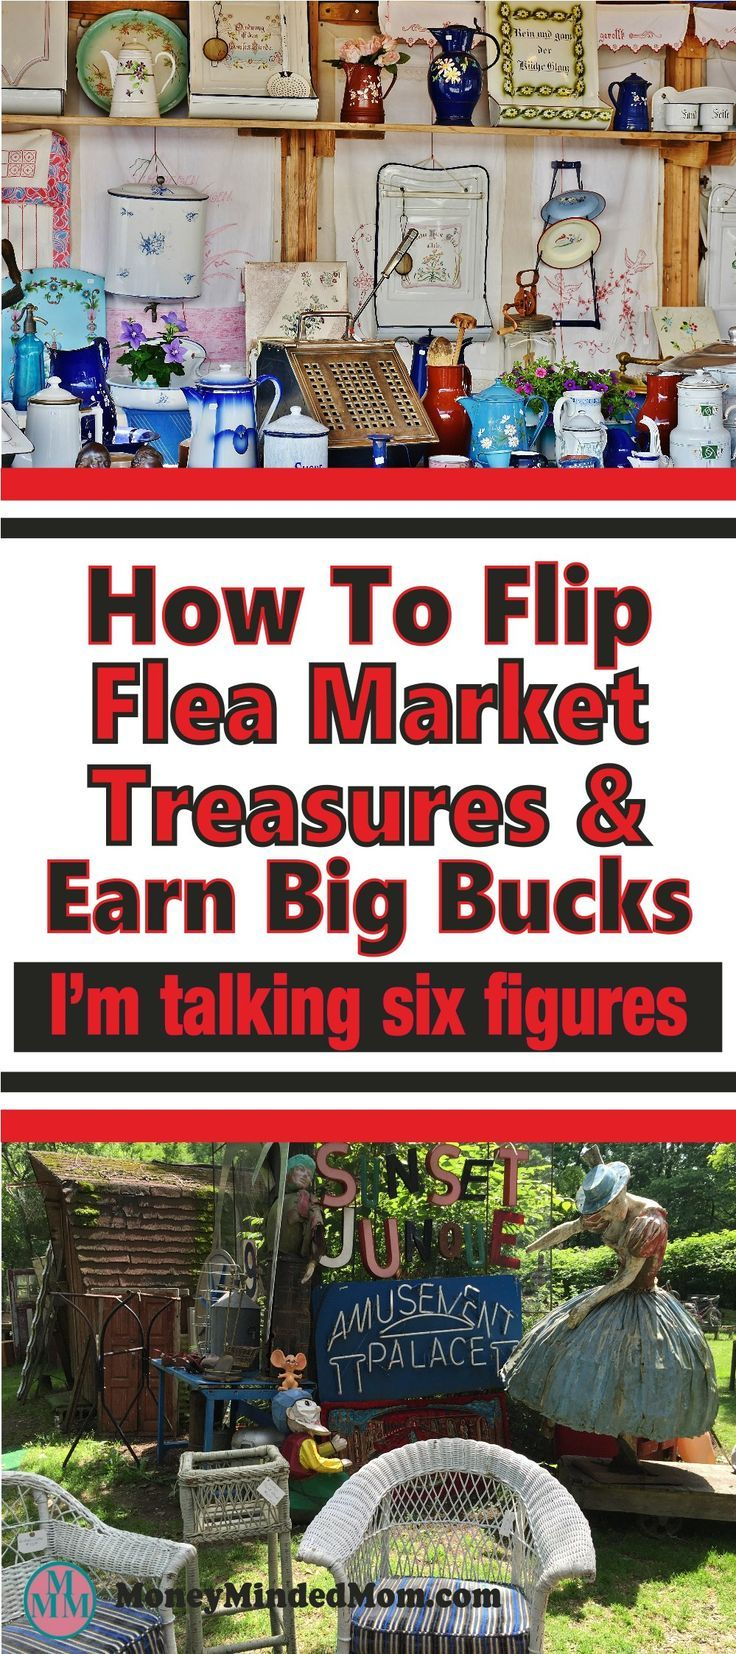 Earn money flipping flea market treasures has huge potential. Whether you want to earn some extra income on the side or start a full time business working from home ~ read this interview with a six figure flipper for some inside secrets. Flea market   flea market ideas   make money at home   extra income   start a business   make money #fleamarket #flippingforprofit #flipperuniversity